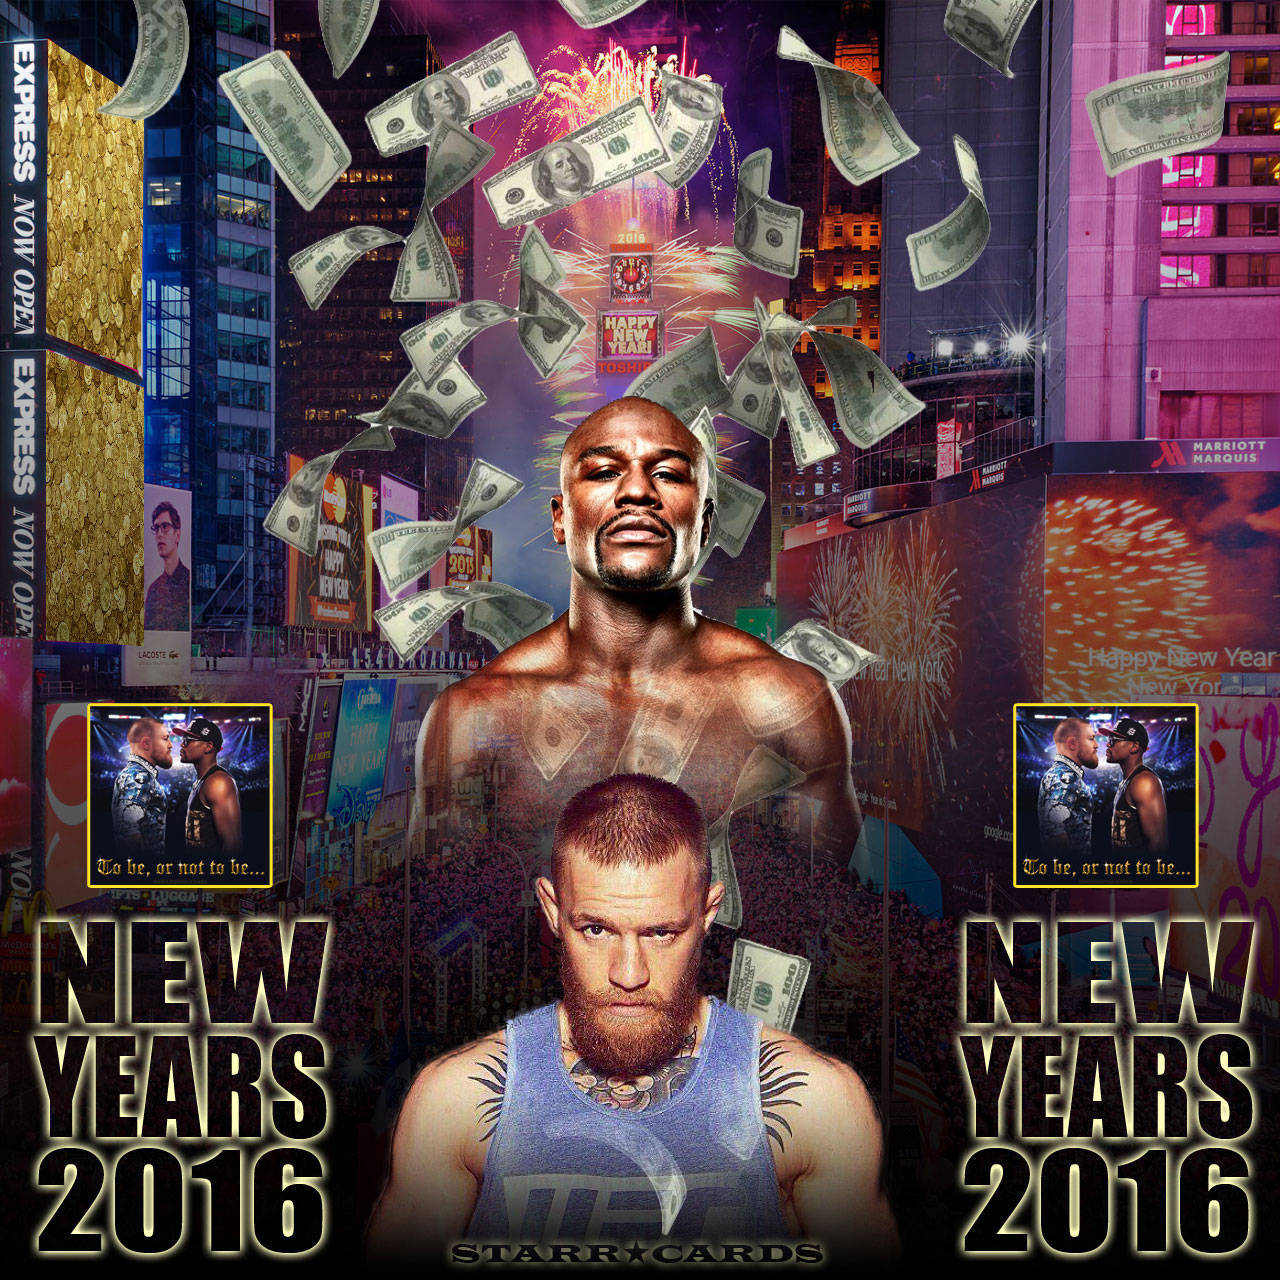 Floyd Mayweather vs Conor McGregor: New Year's 2016 Bash